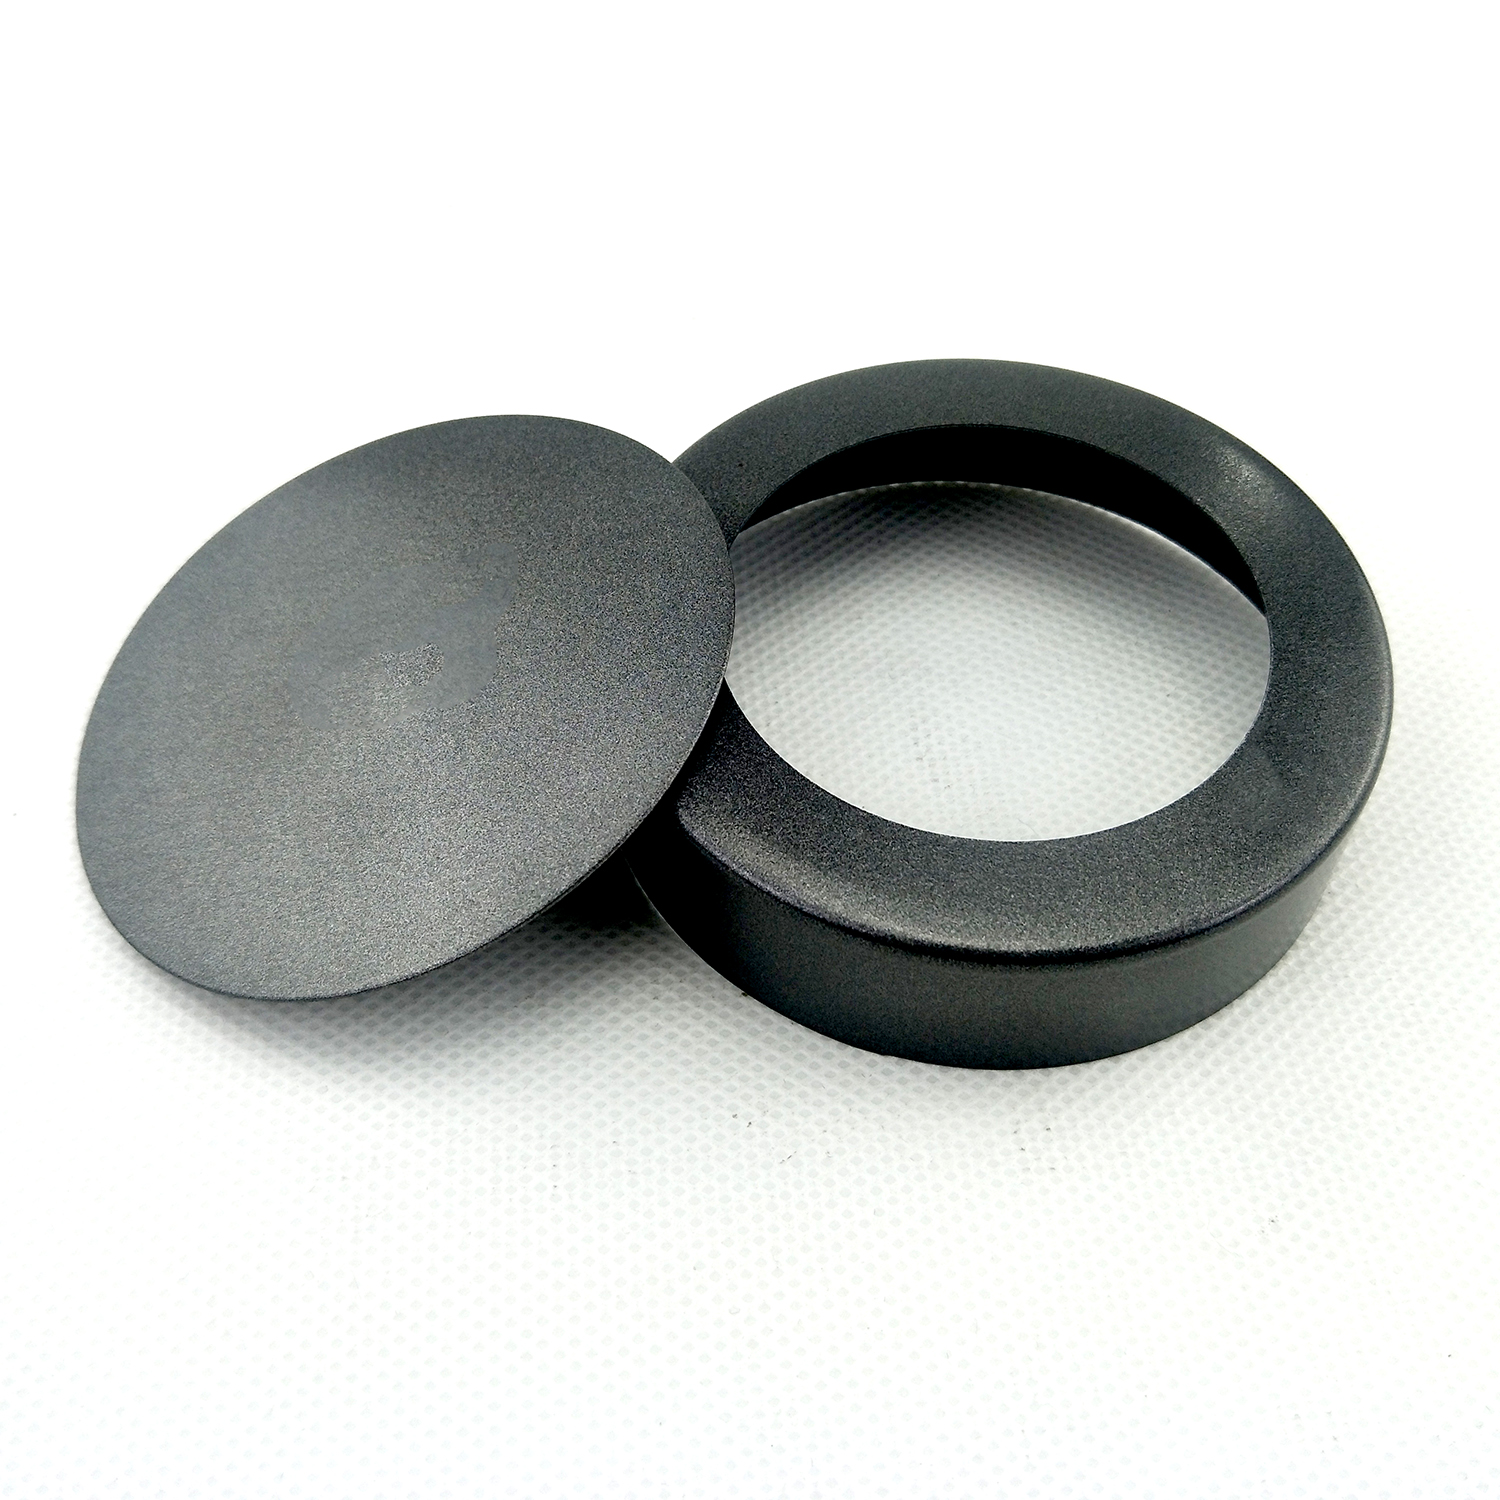 Hot Sale Carbon Steel Non-stick Round with Removable Bottom Tarte Tins